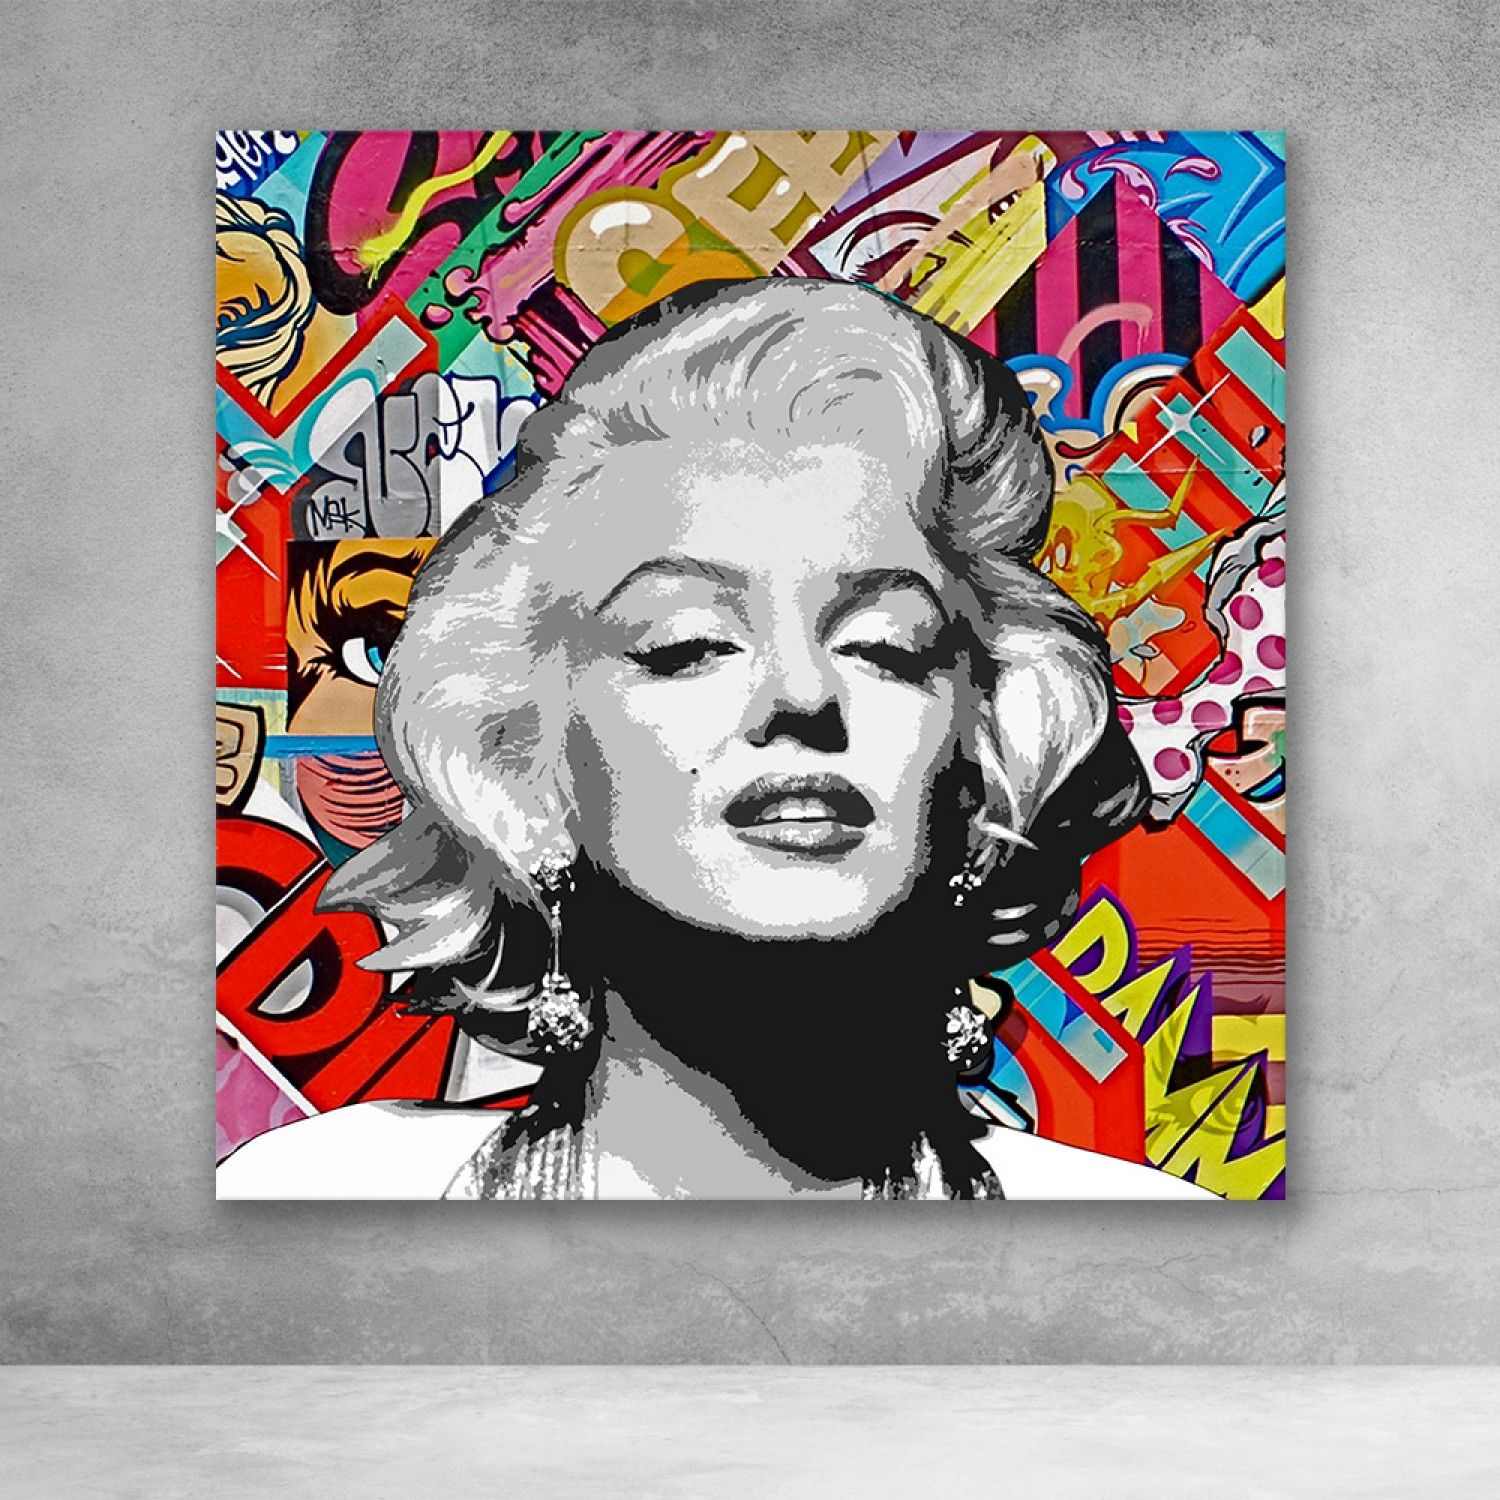 Marilyn Monroe Graffiti Pop Culture Modern Canvas Wall Art In 2021 Modern Wall Art Canvas Pop Art Marilyn Marilyn Monroe Pop Art